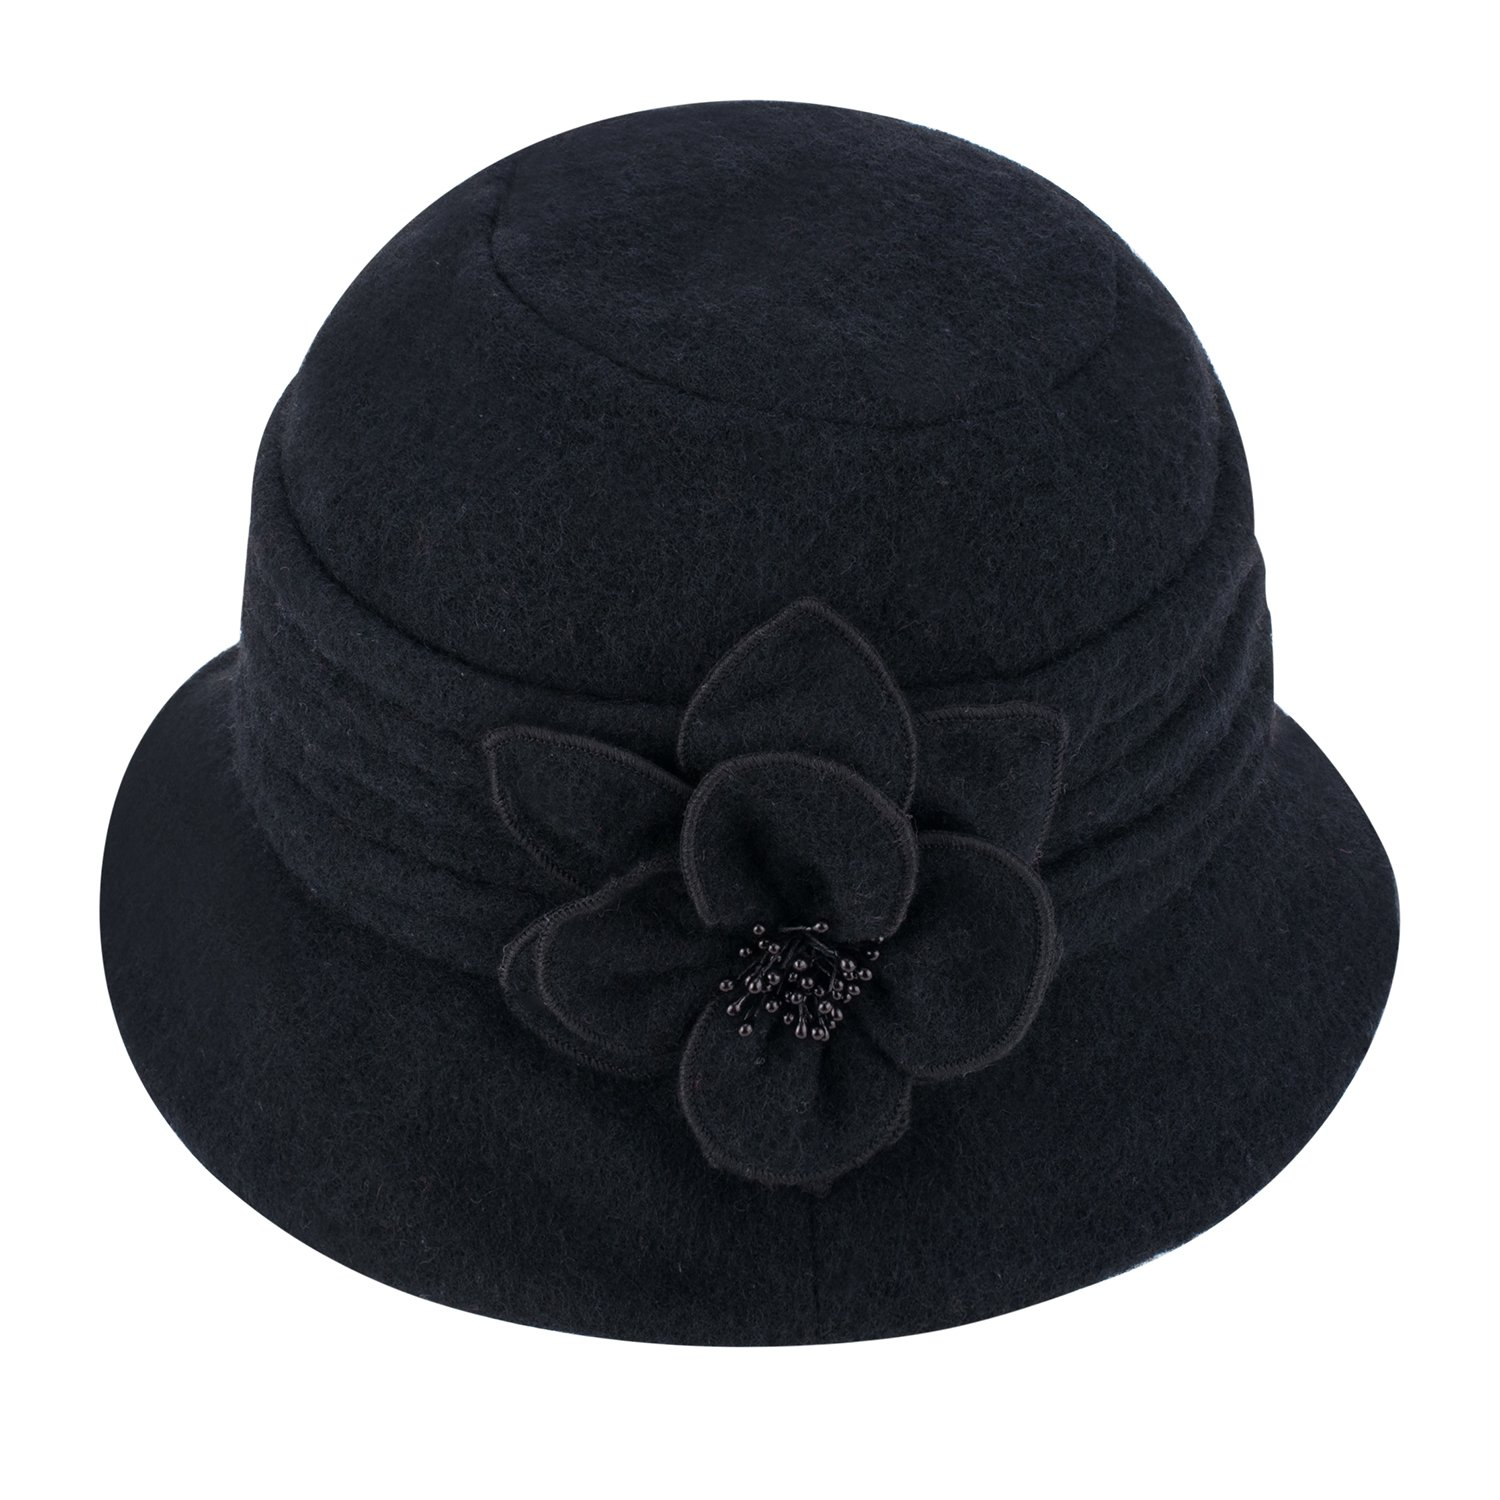 Lawliet Womens Gatsby 1920s Winter Wool Cap Beret Beanie Cloche Bucket Hat A299 (Black)